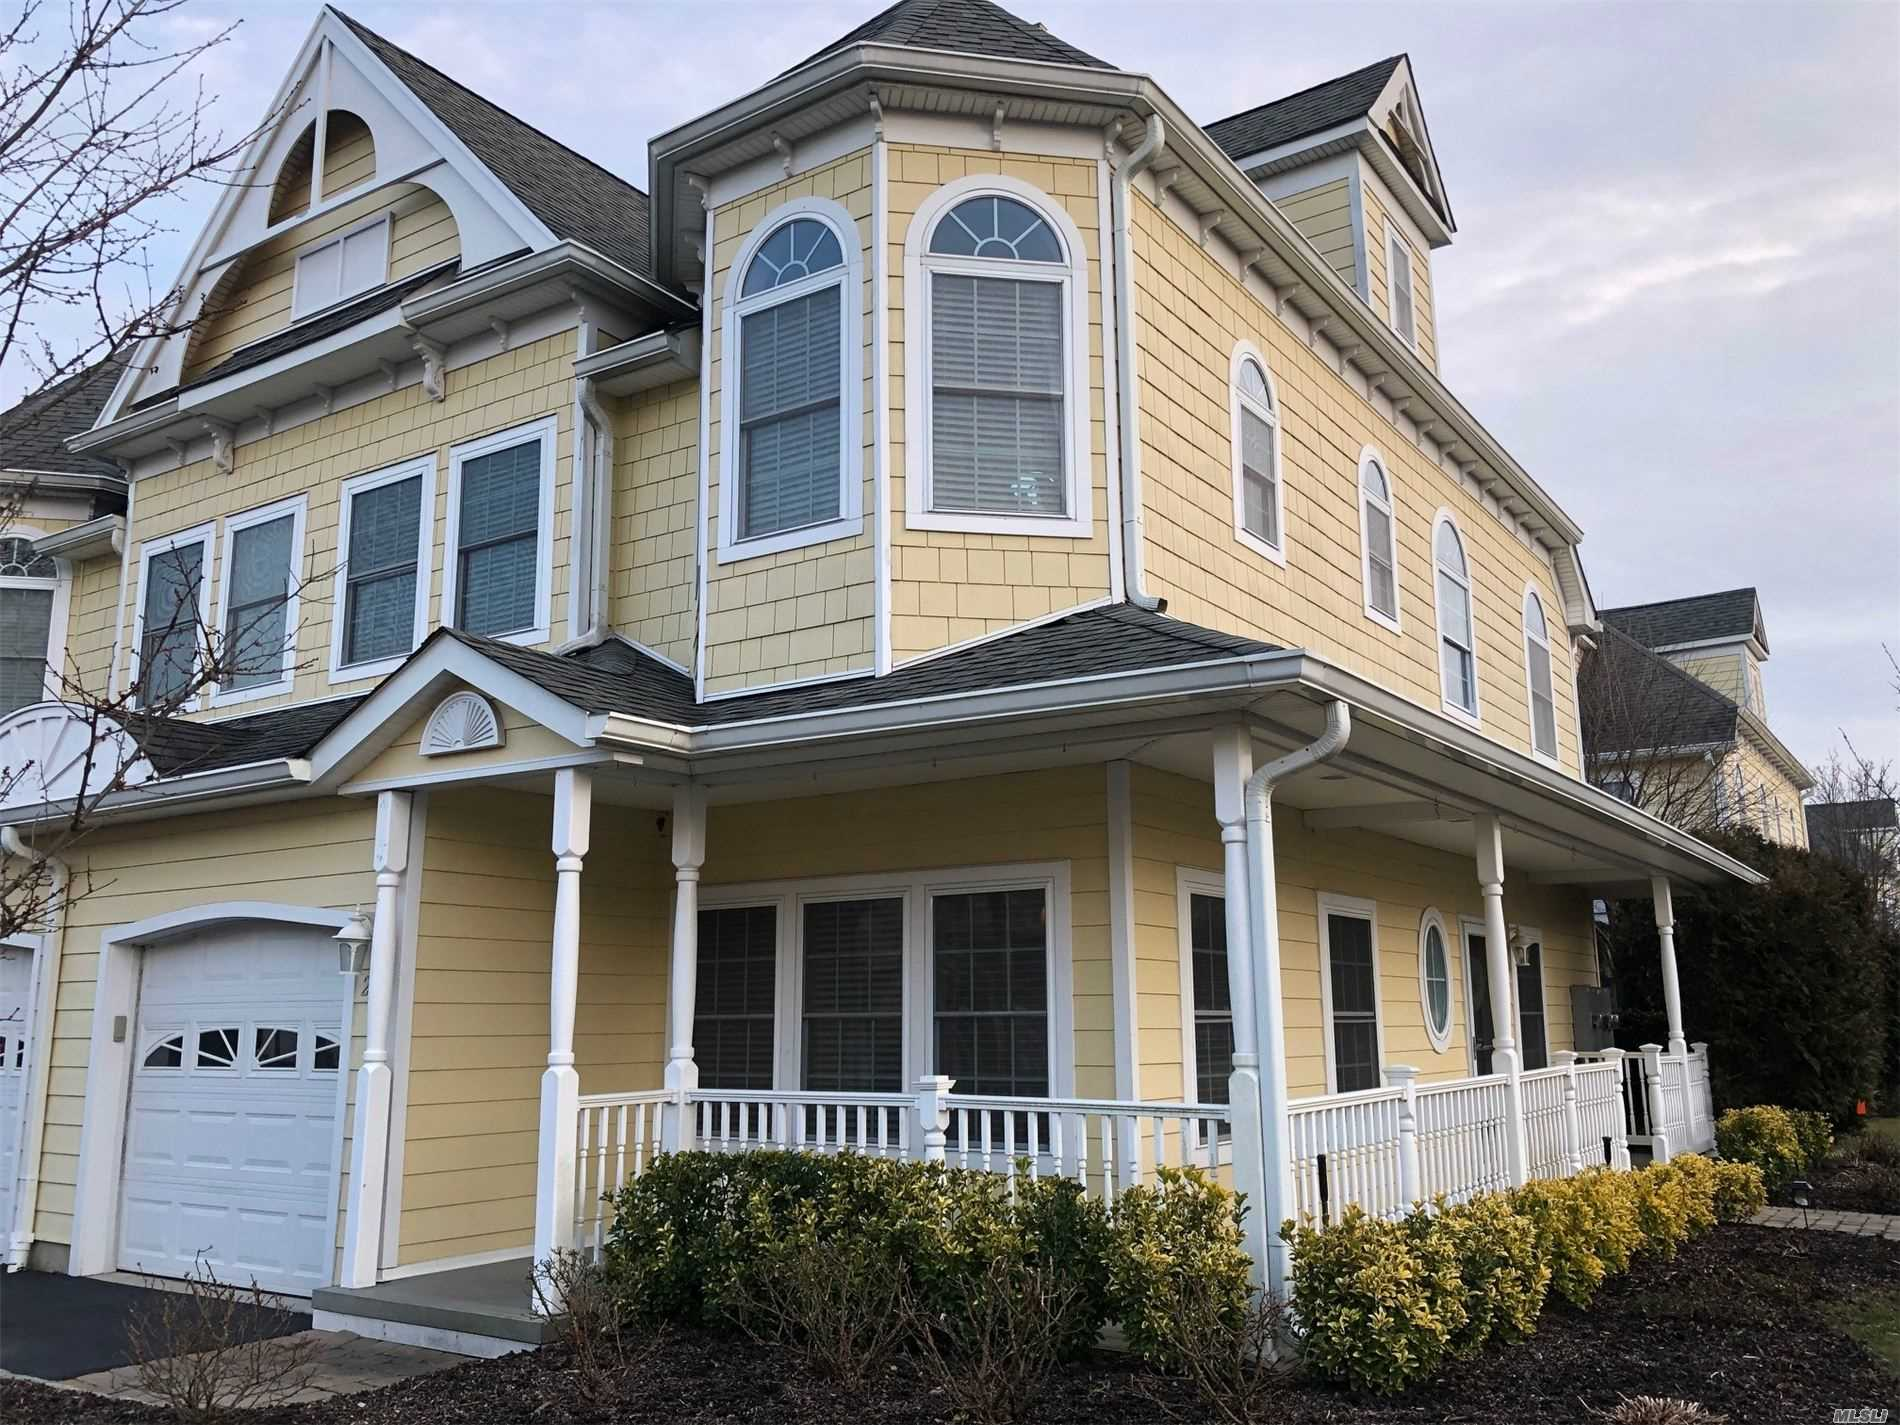 Property for sale at 206 Emily Drive, Patchogue NY 11772, Patchogue,  New York 11772